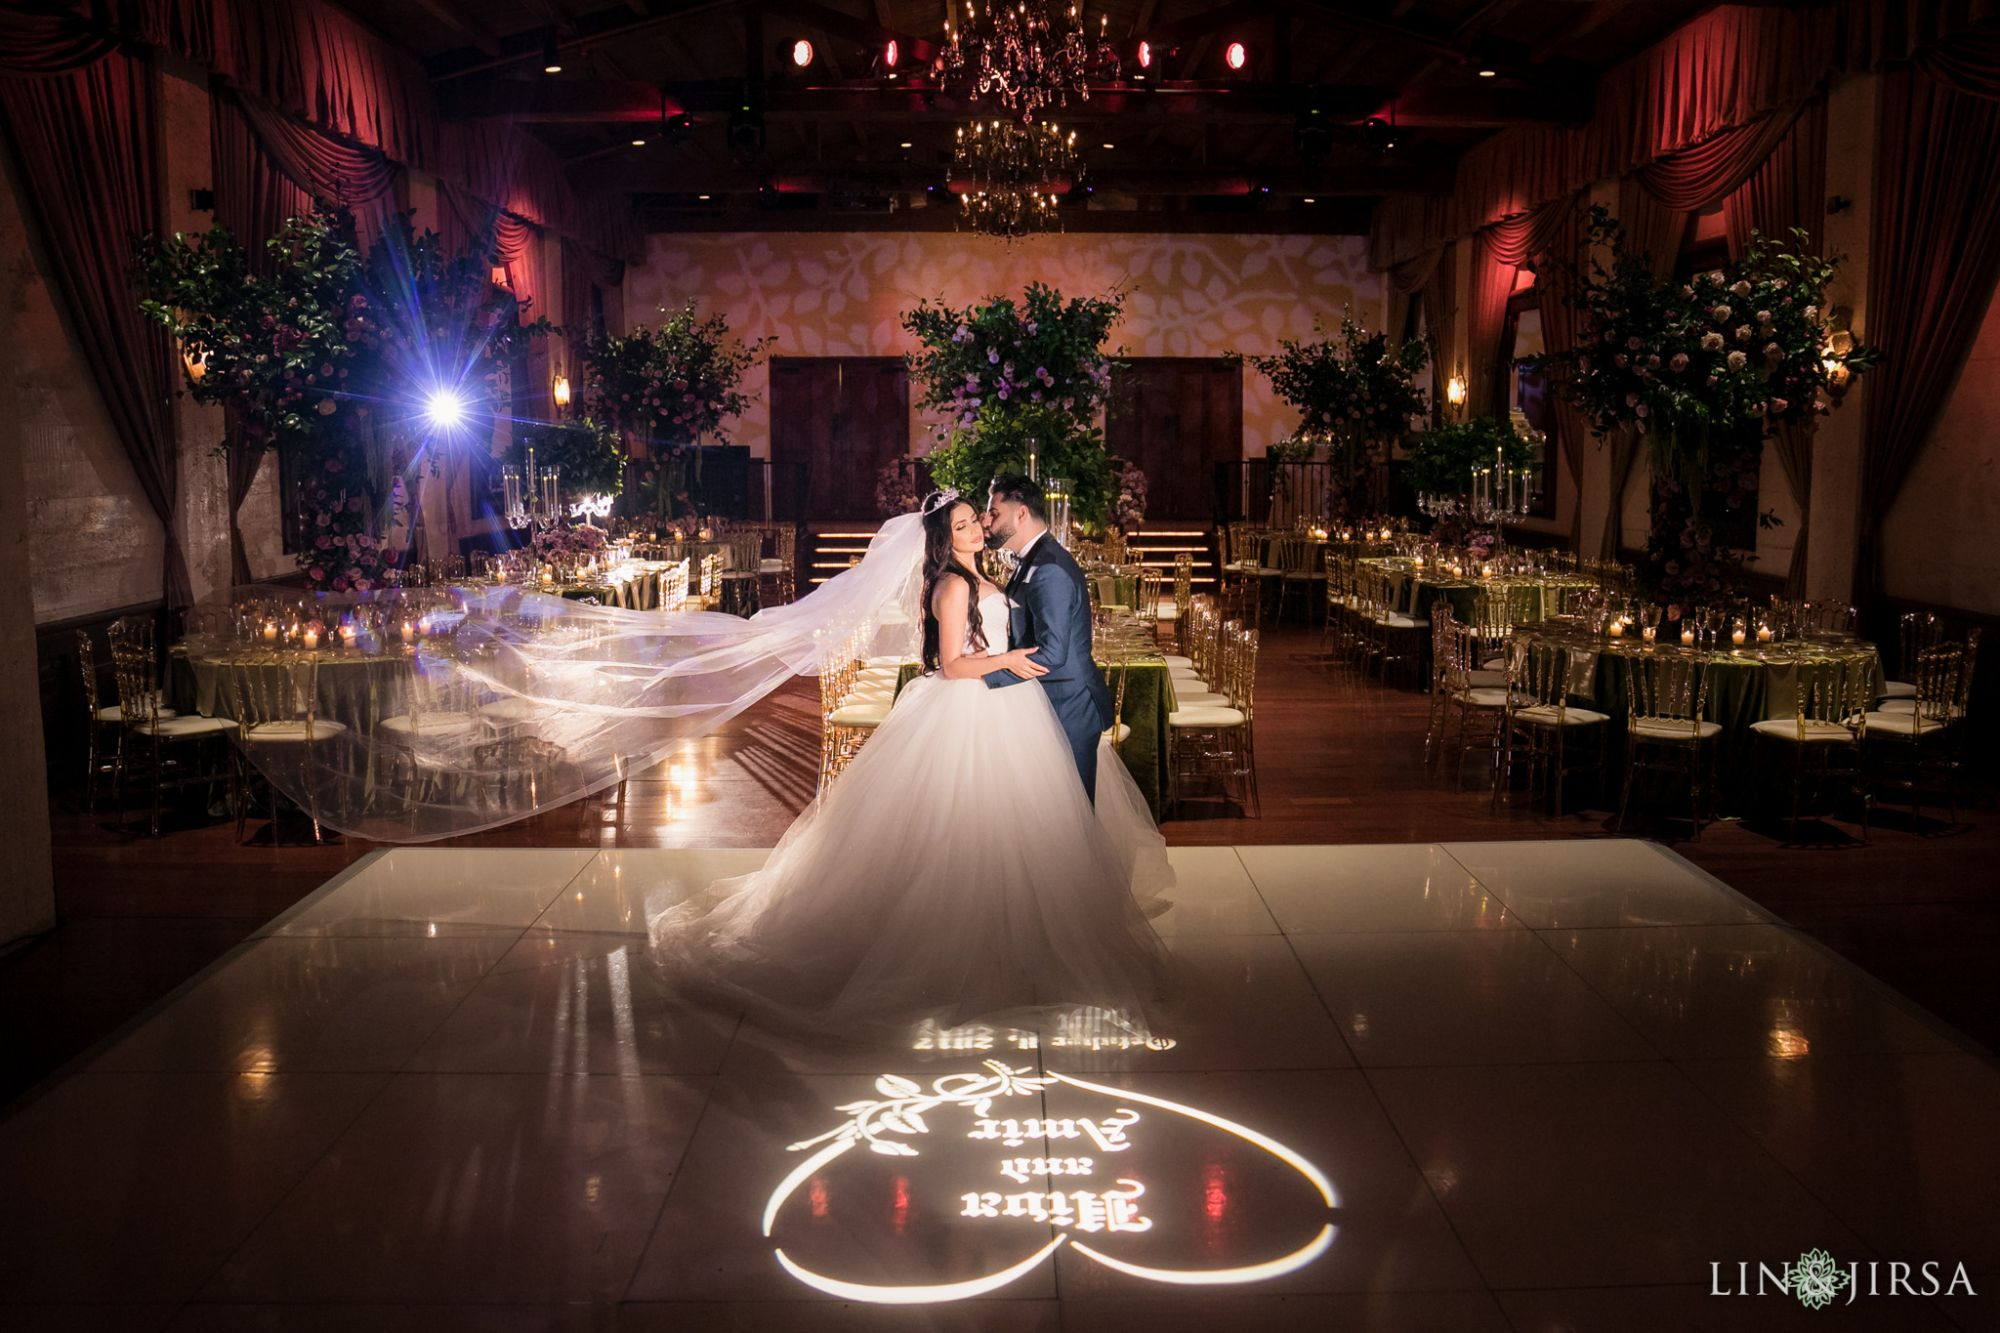 White dance floor and monogram gobo